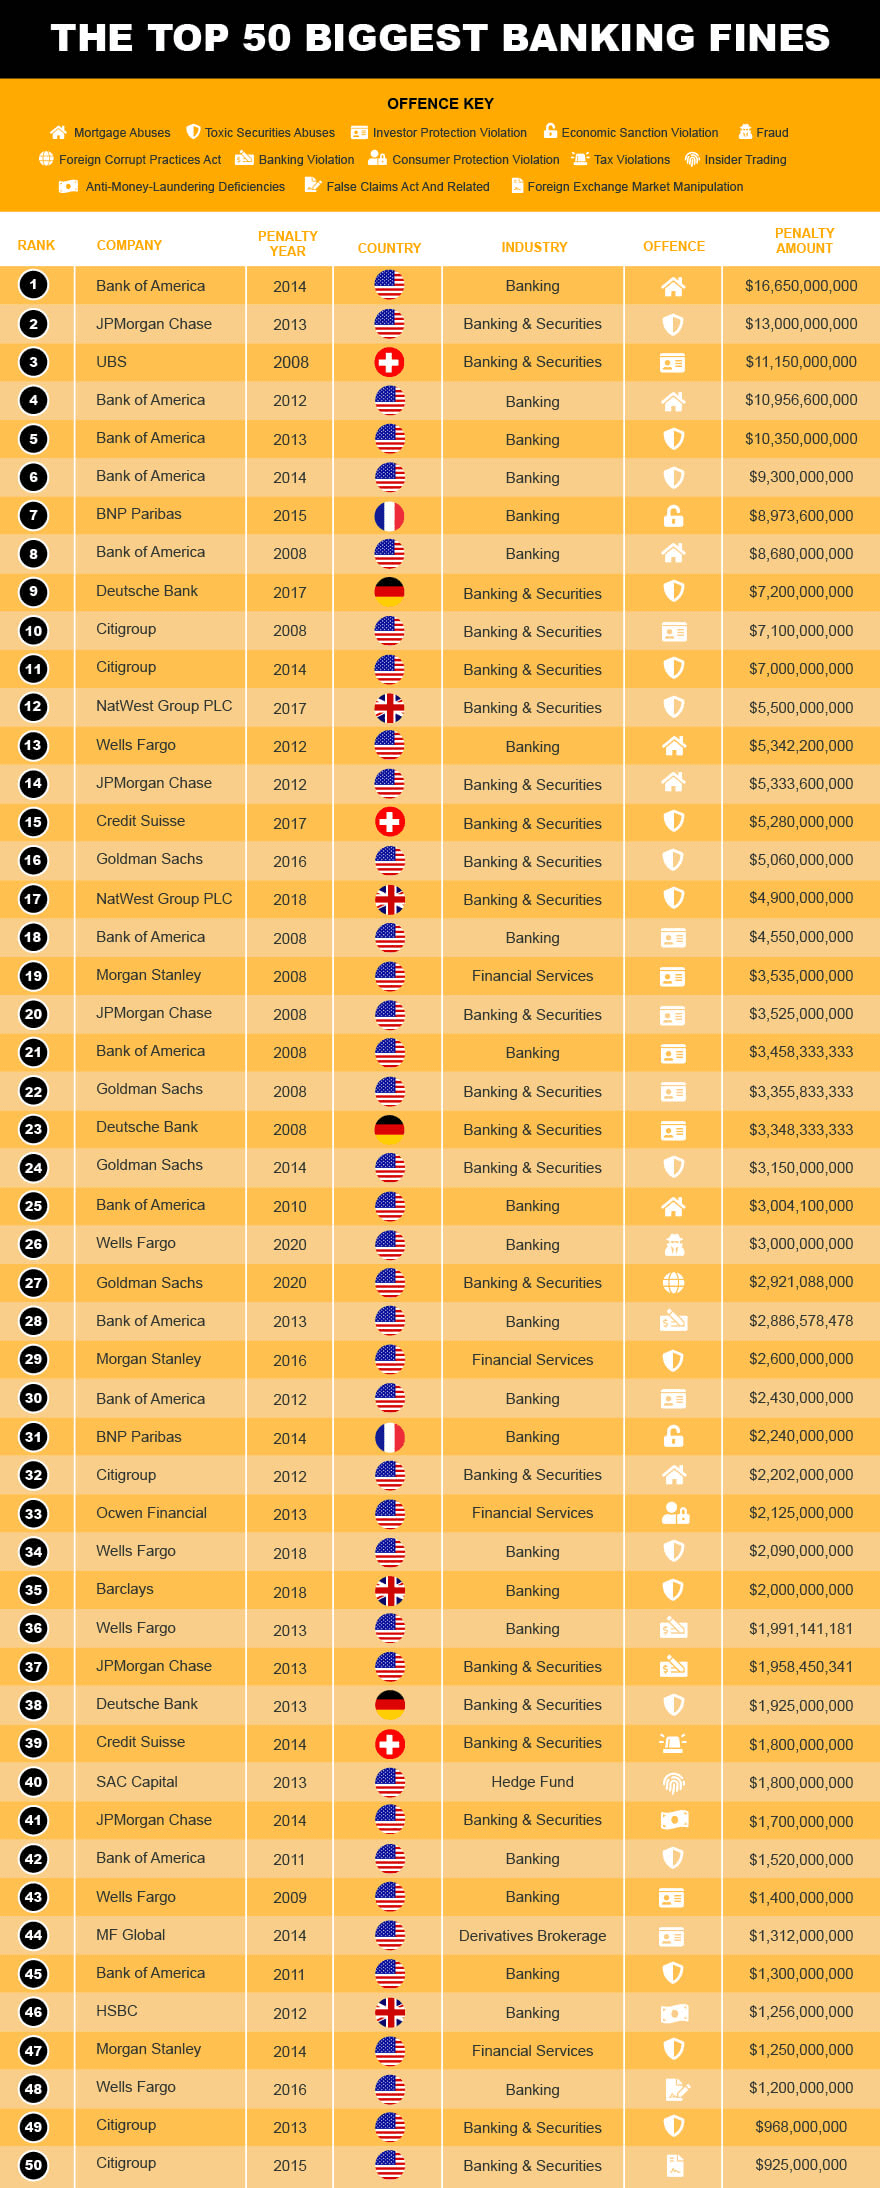 Investment fines - The top 50 biggest banking fines